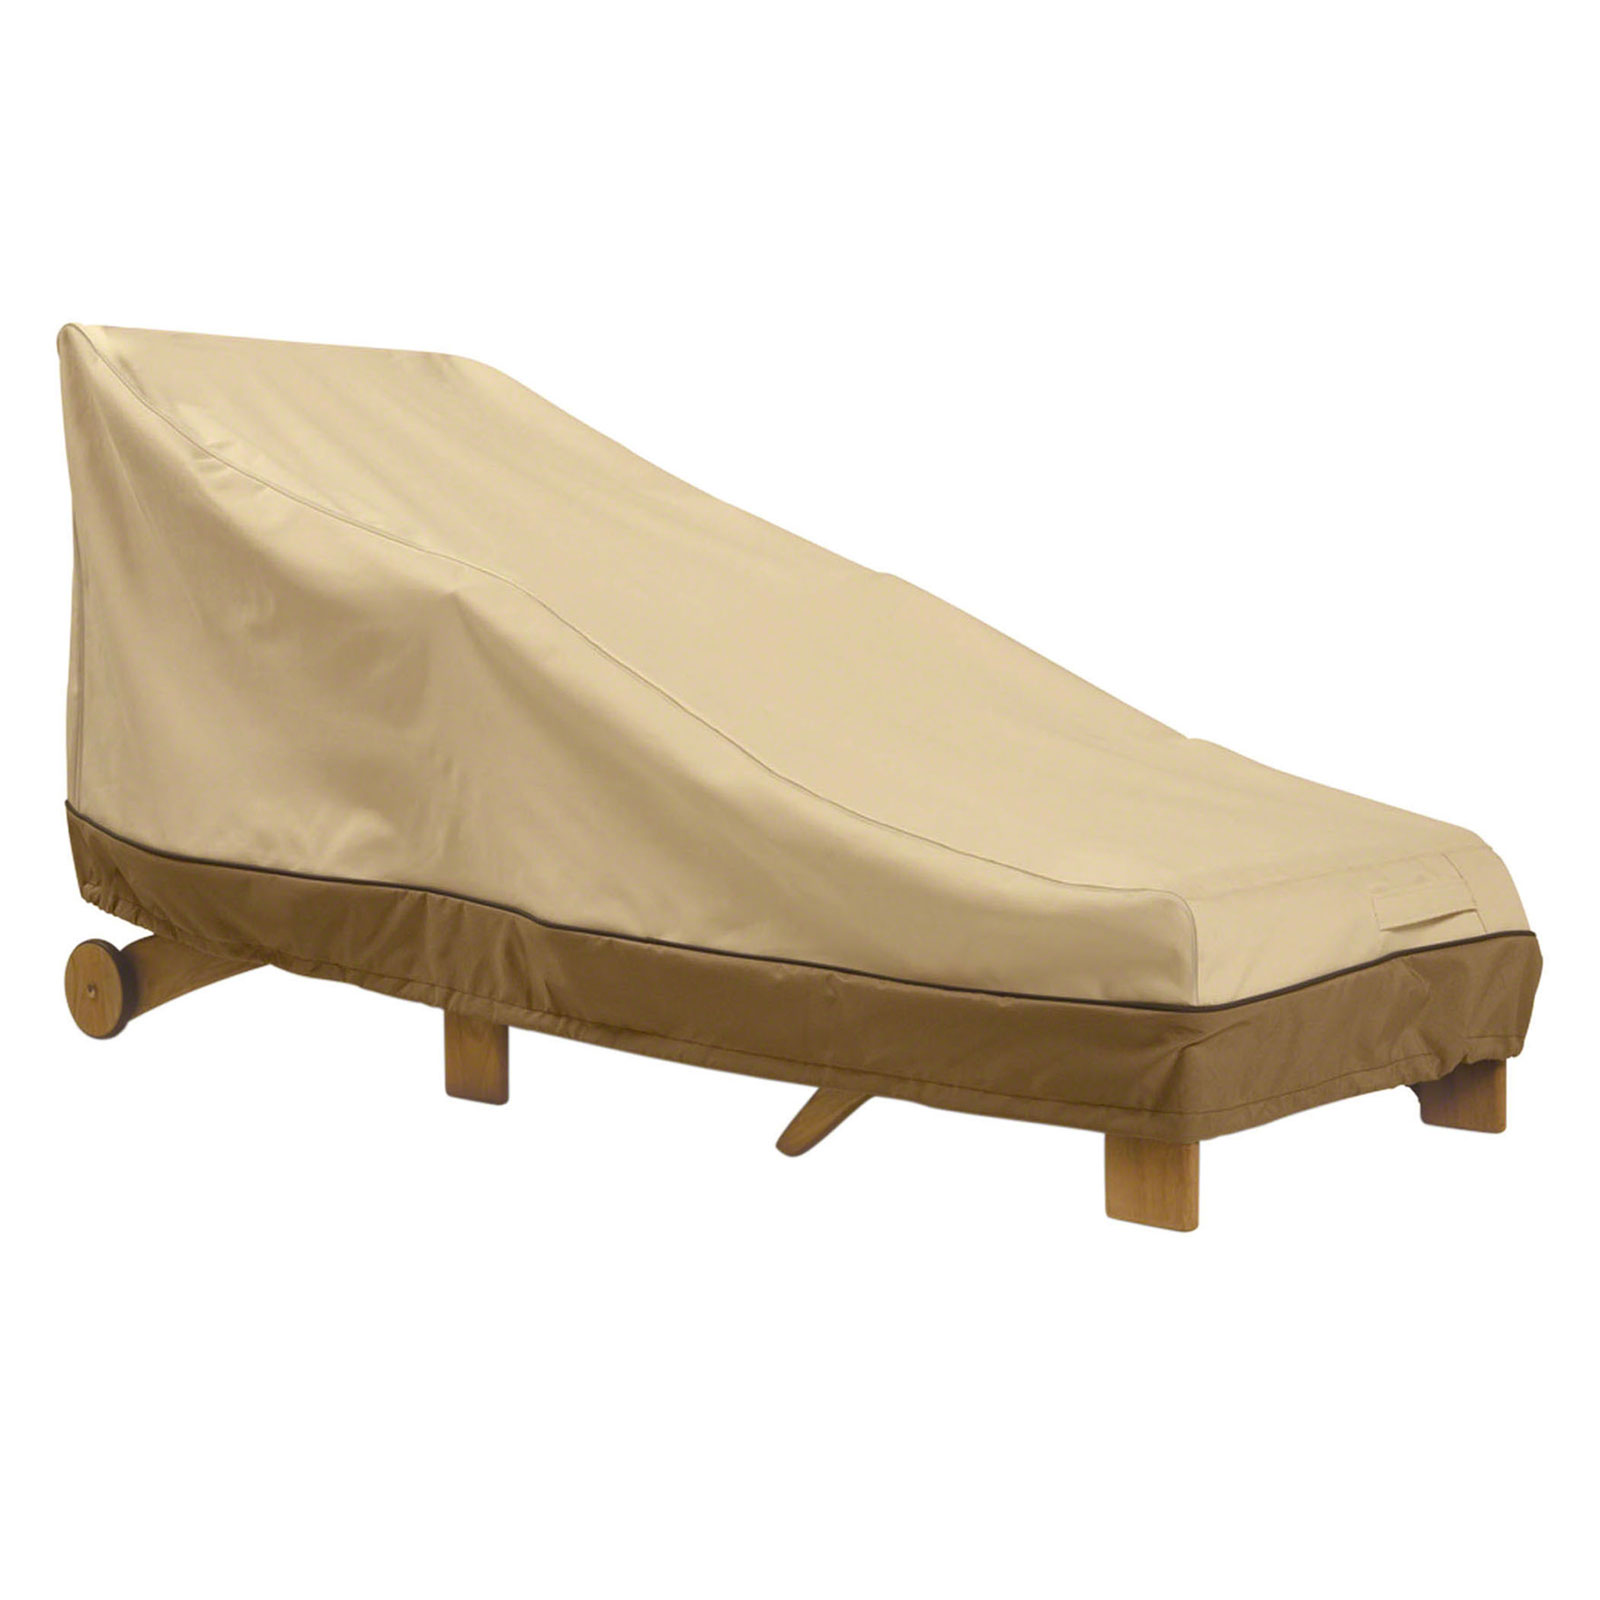 chaise lounge cover veranda in patio furniture covers